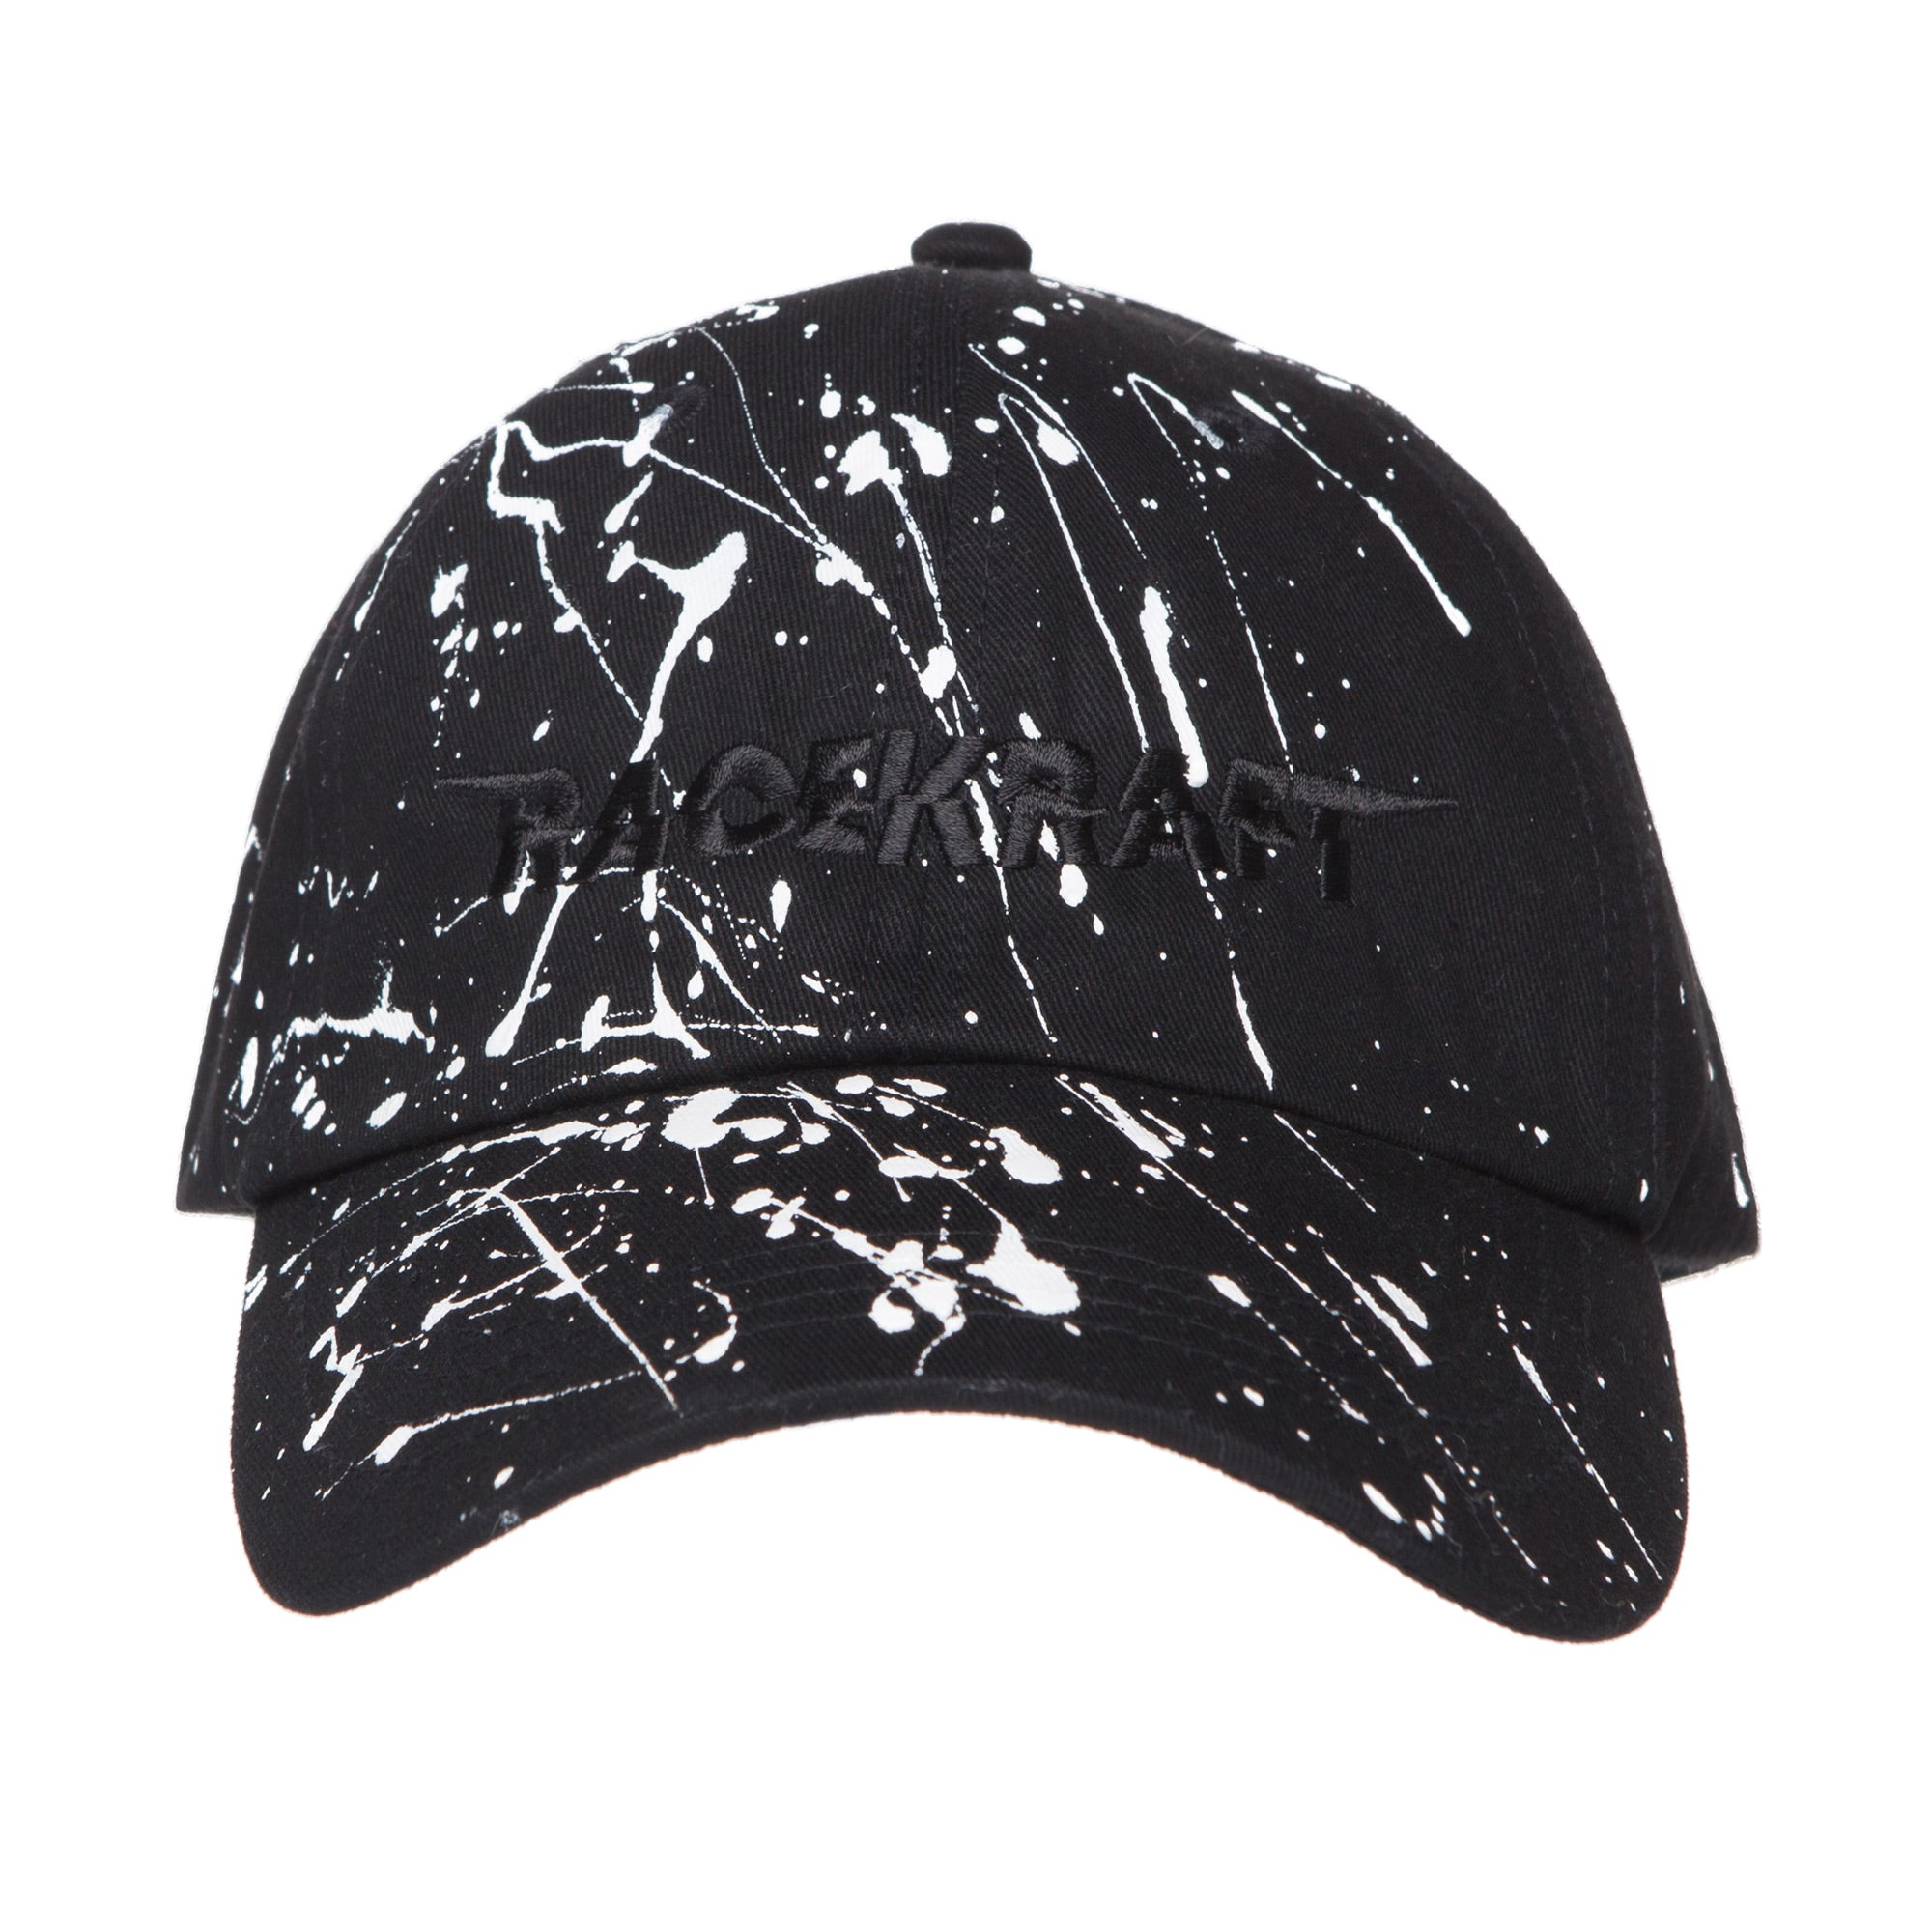 "Paint Splat Plain Cotton Polo Twill Black RaceKraft ""Black RaceKraft"" StrapBack Hat"